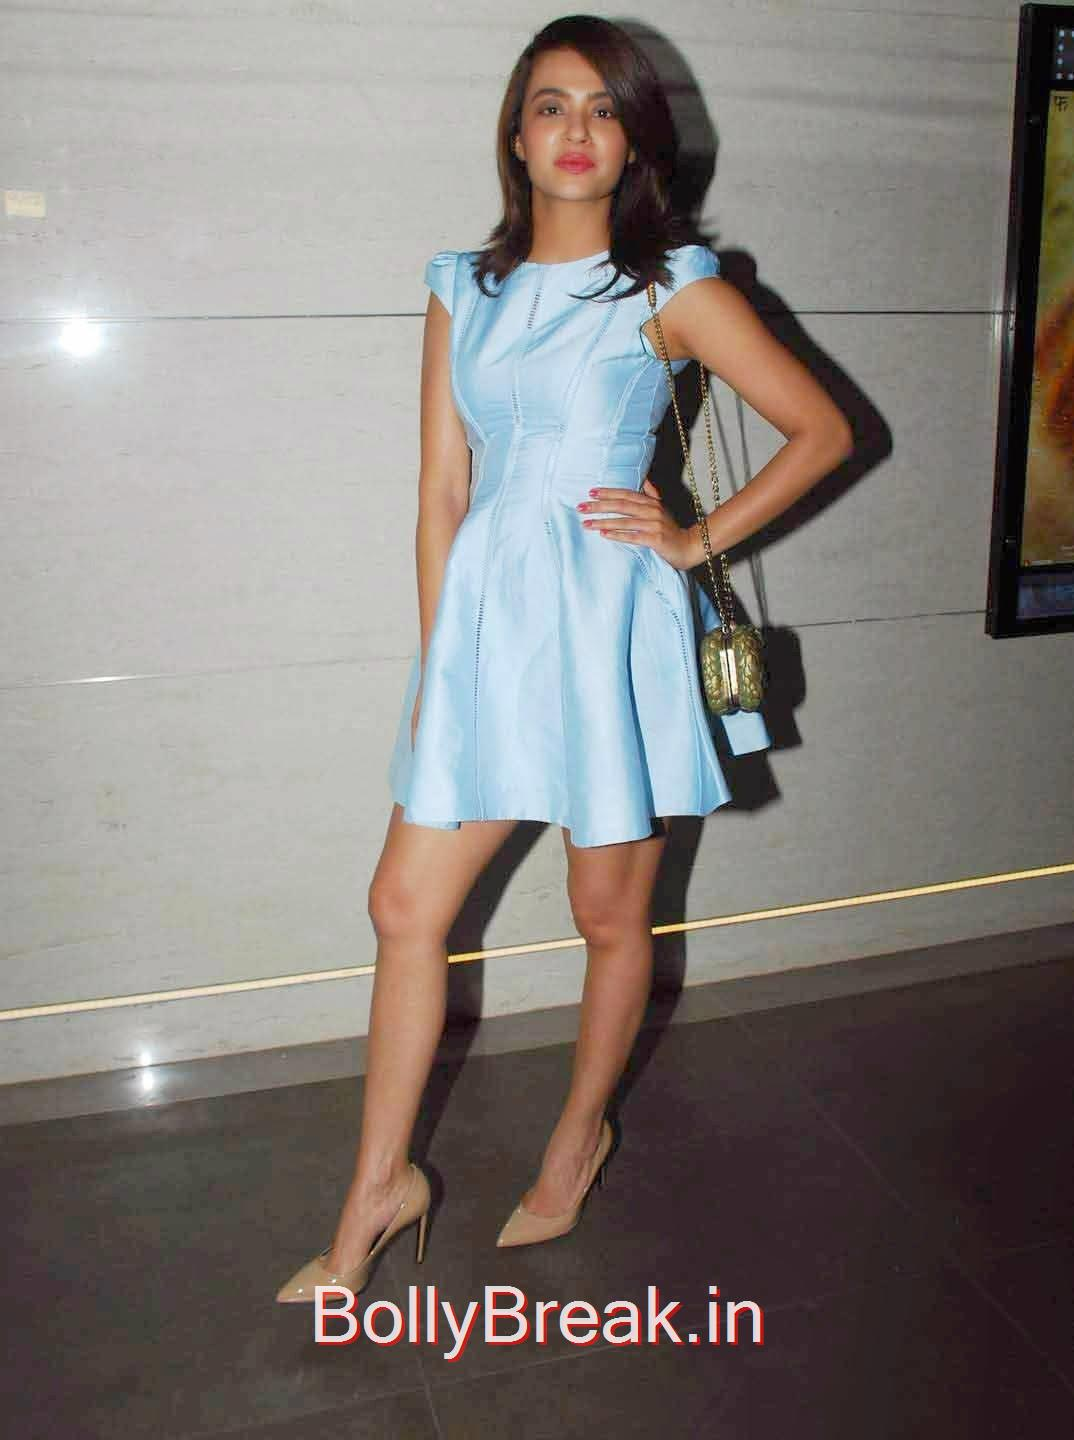 Hindi Actress Surveen Chawla, Surveen Chawla Hot Pics from LFW Summer Resort 2015